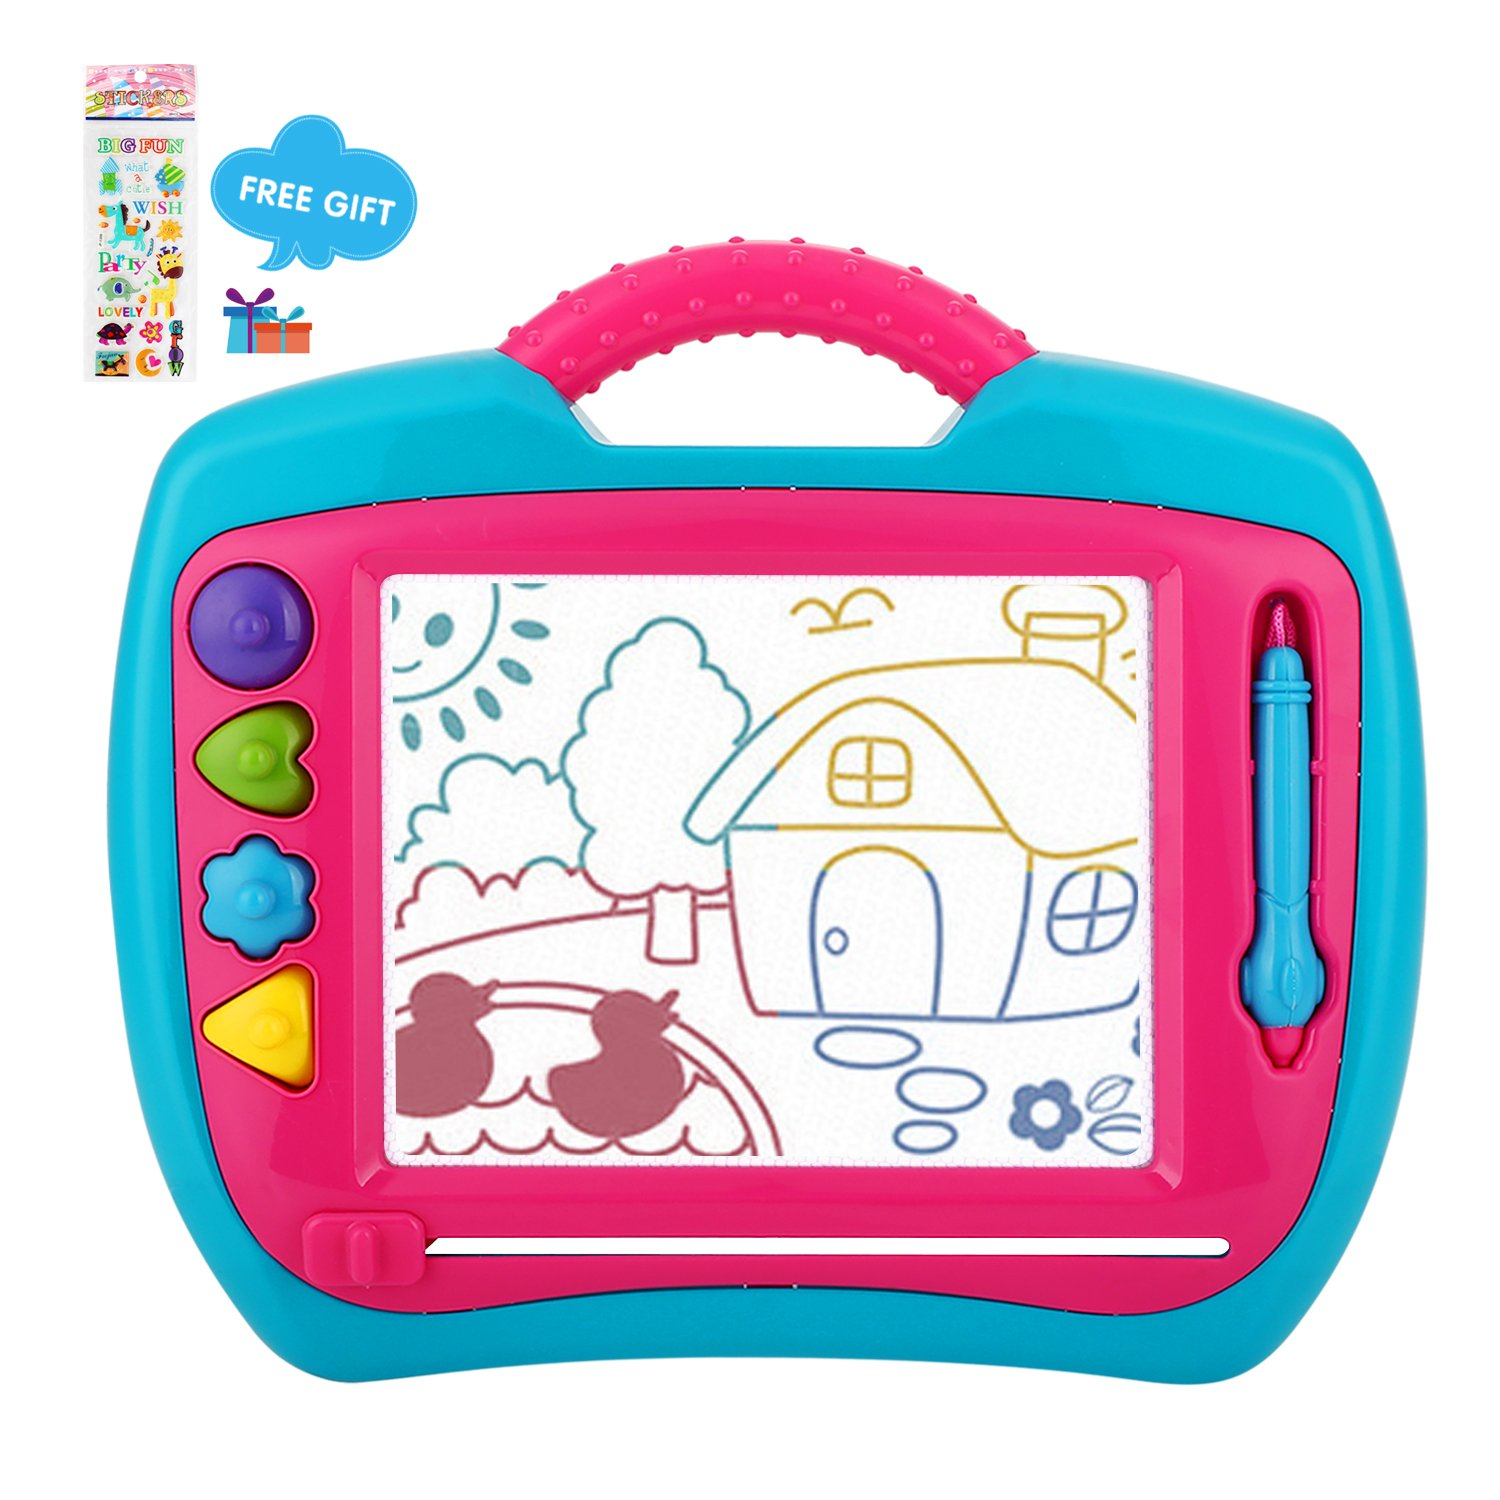 Peradix Doodle Magnetic Drawing Board Sketch Scribble Tablet Education Writing Drawing Painting Colorful Erasable Toy for Toddler Kids (BlueΠnk)